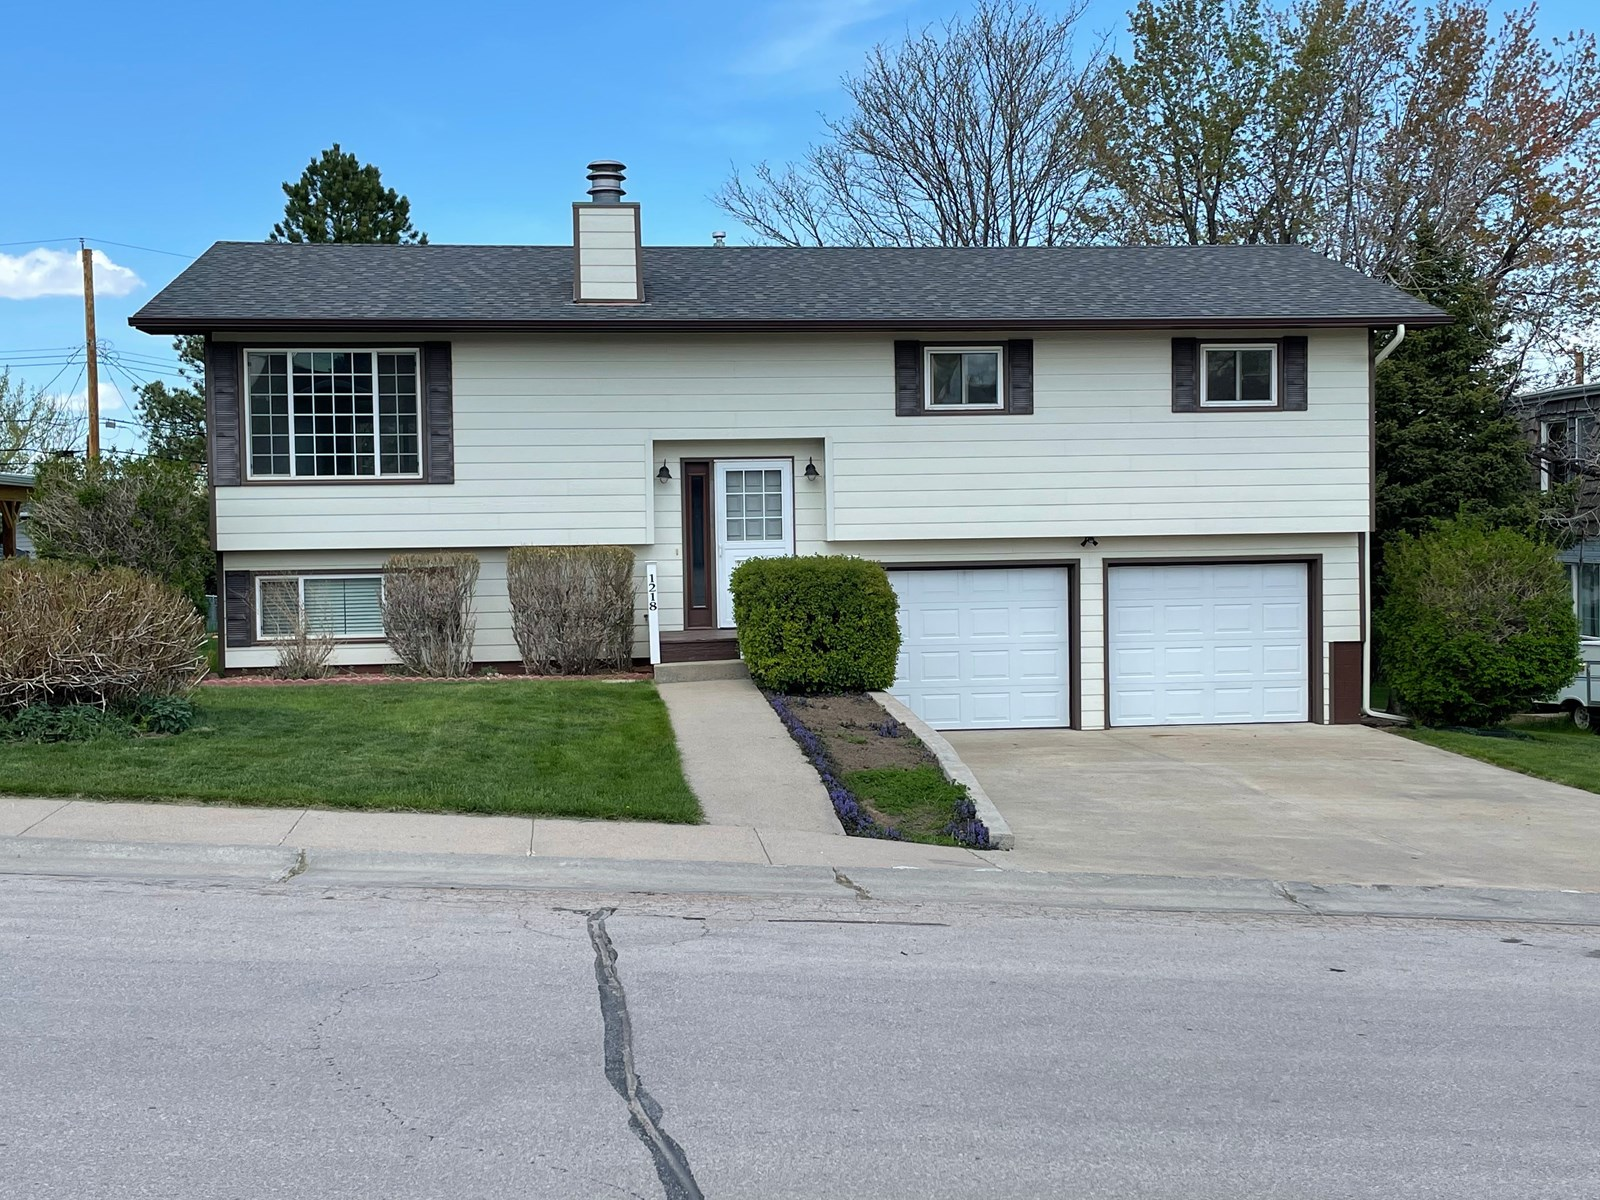 Spearfish, SD Residential Home for Sale